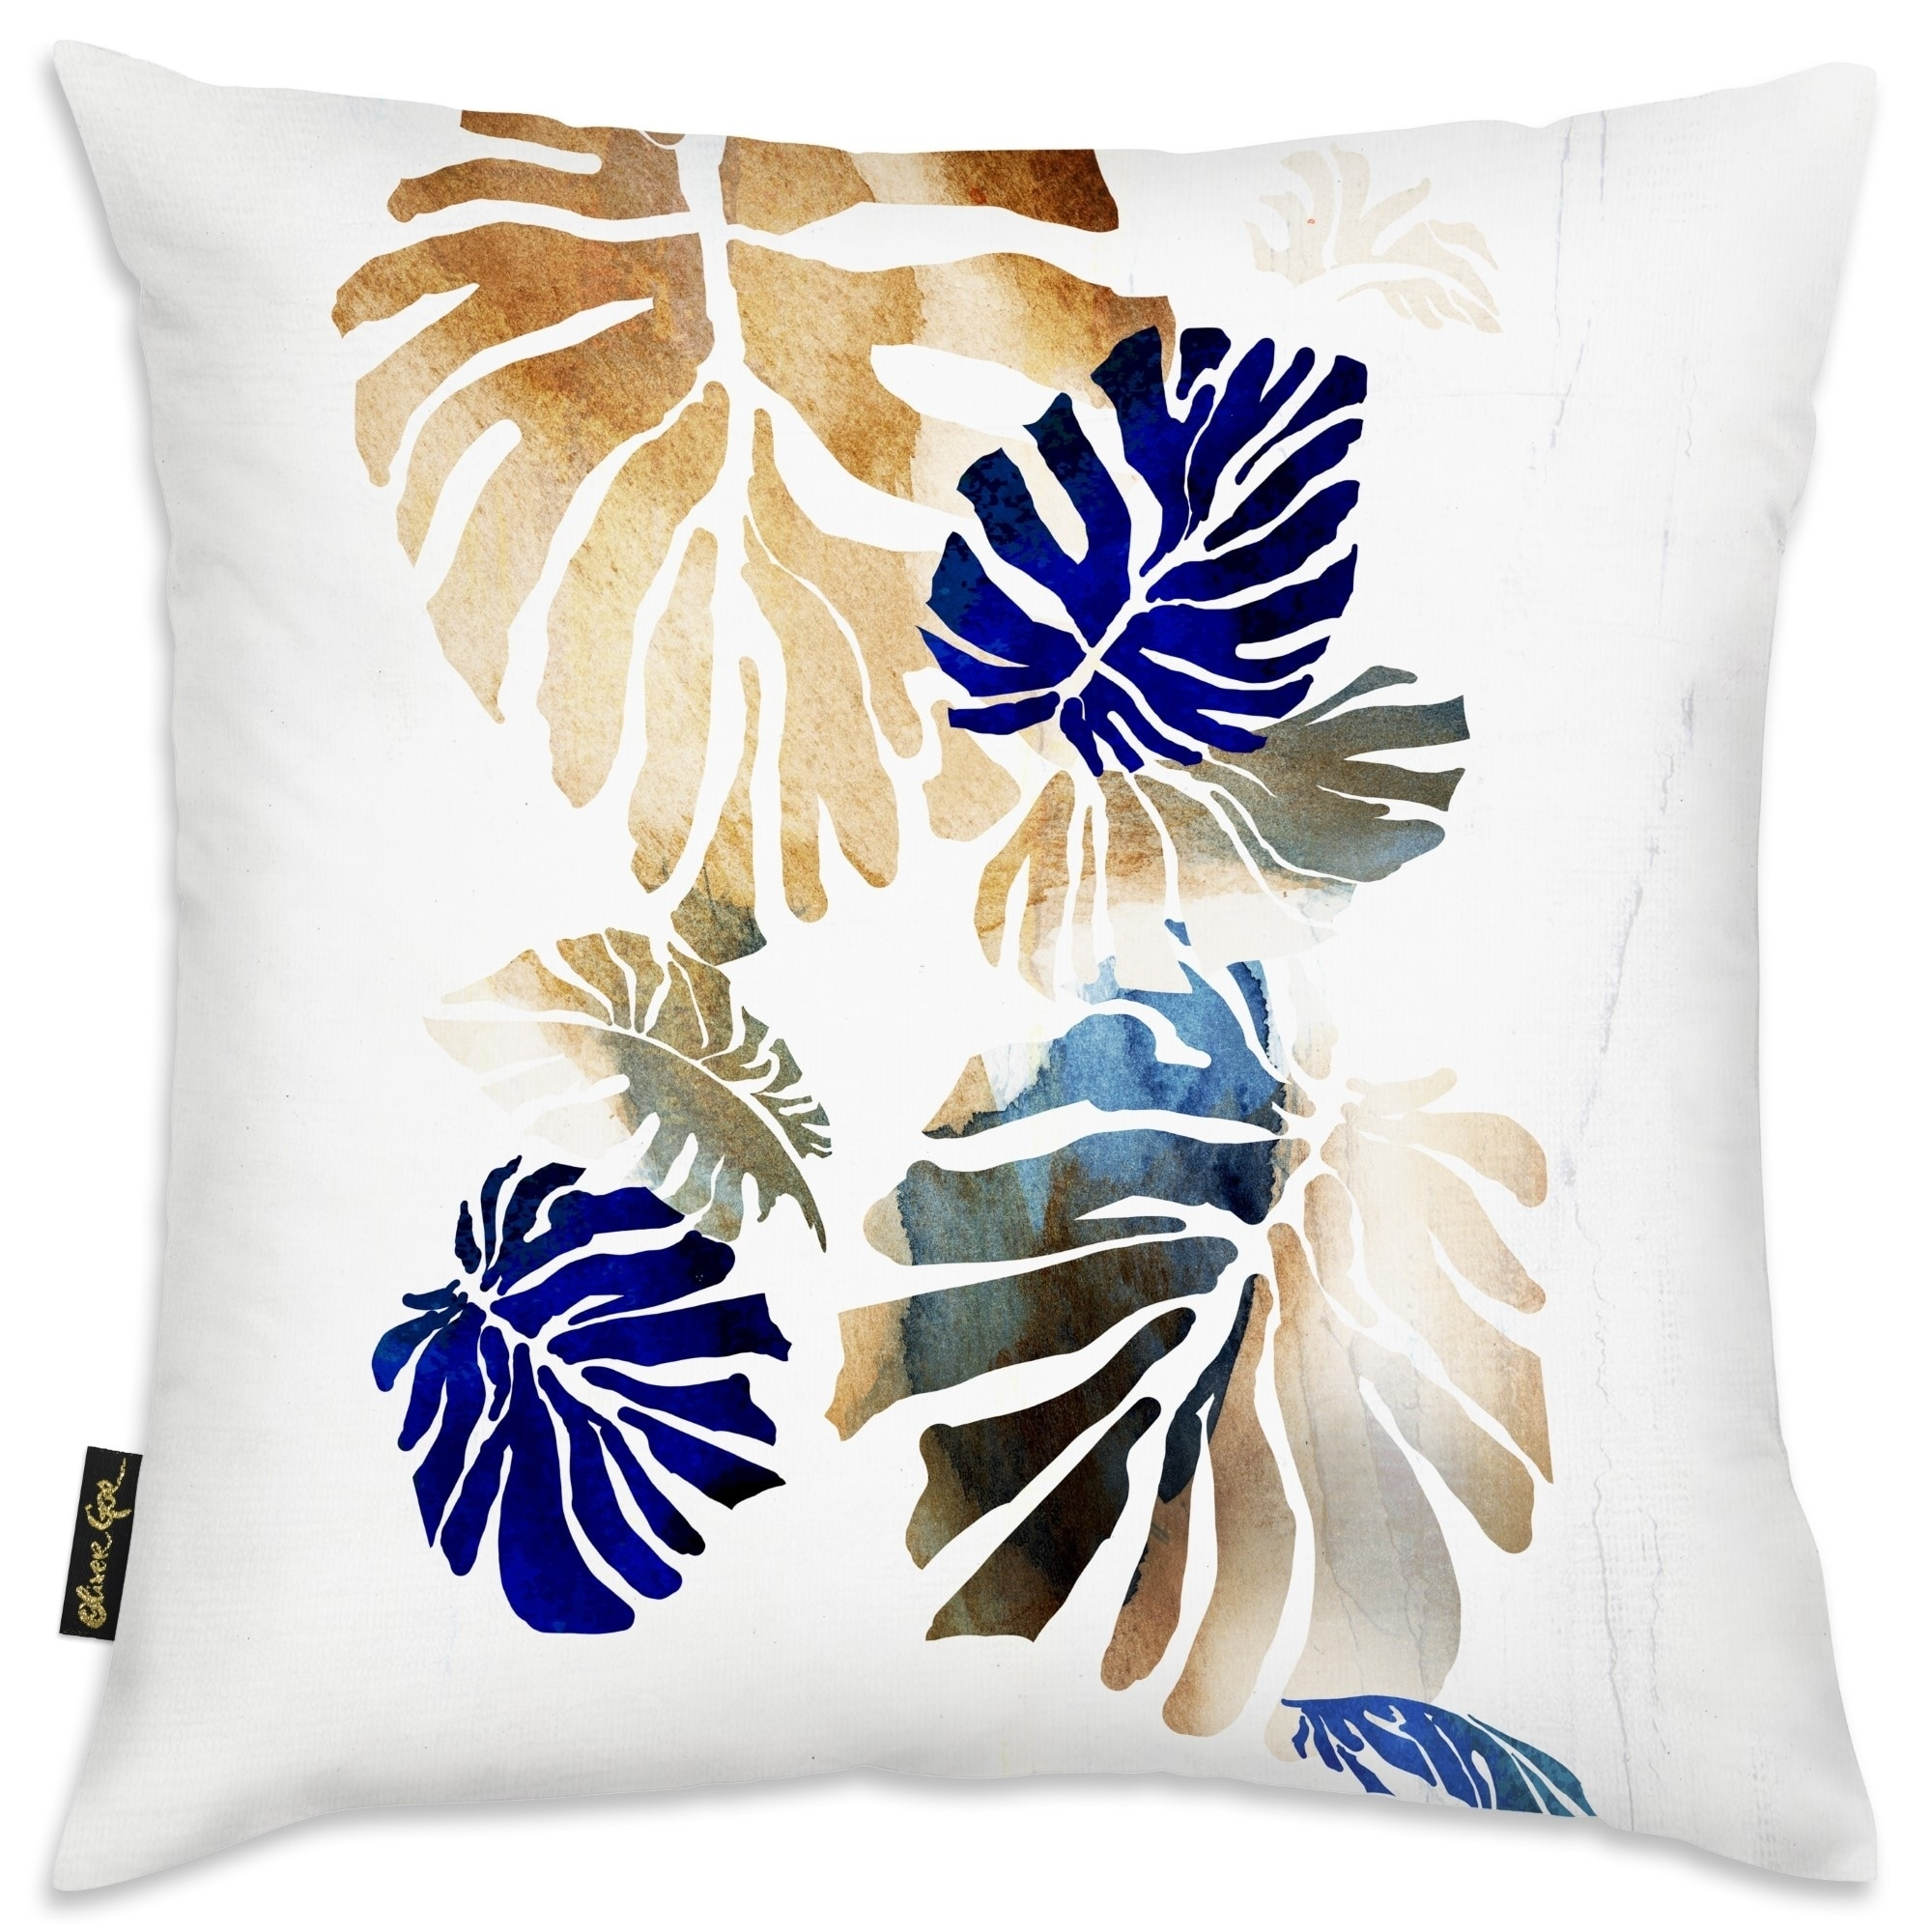 Oliver Gal Jungle Tree Navy Brown Ii Floral And Botanical Decorative Throw Pillow Botanicals Gold Blue Overstock 31047583